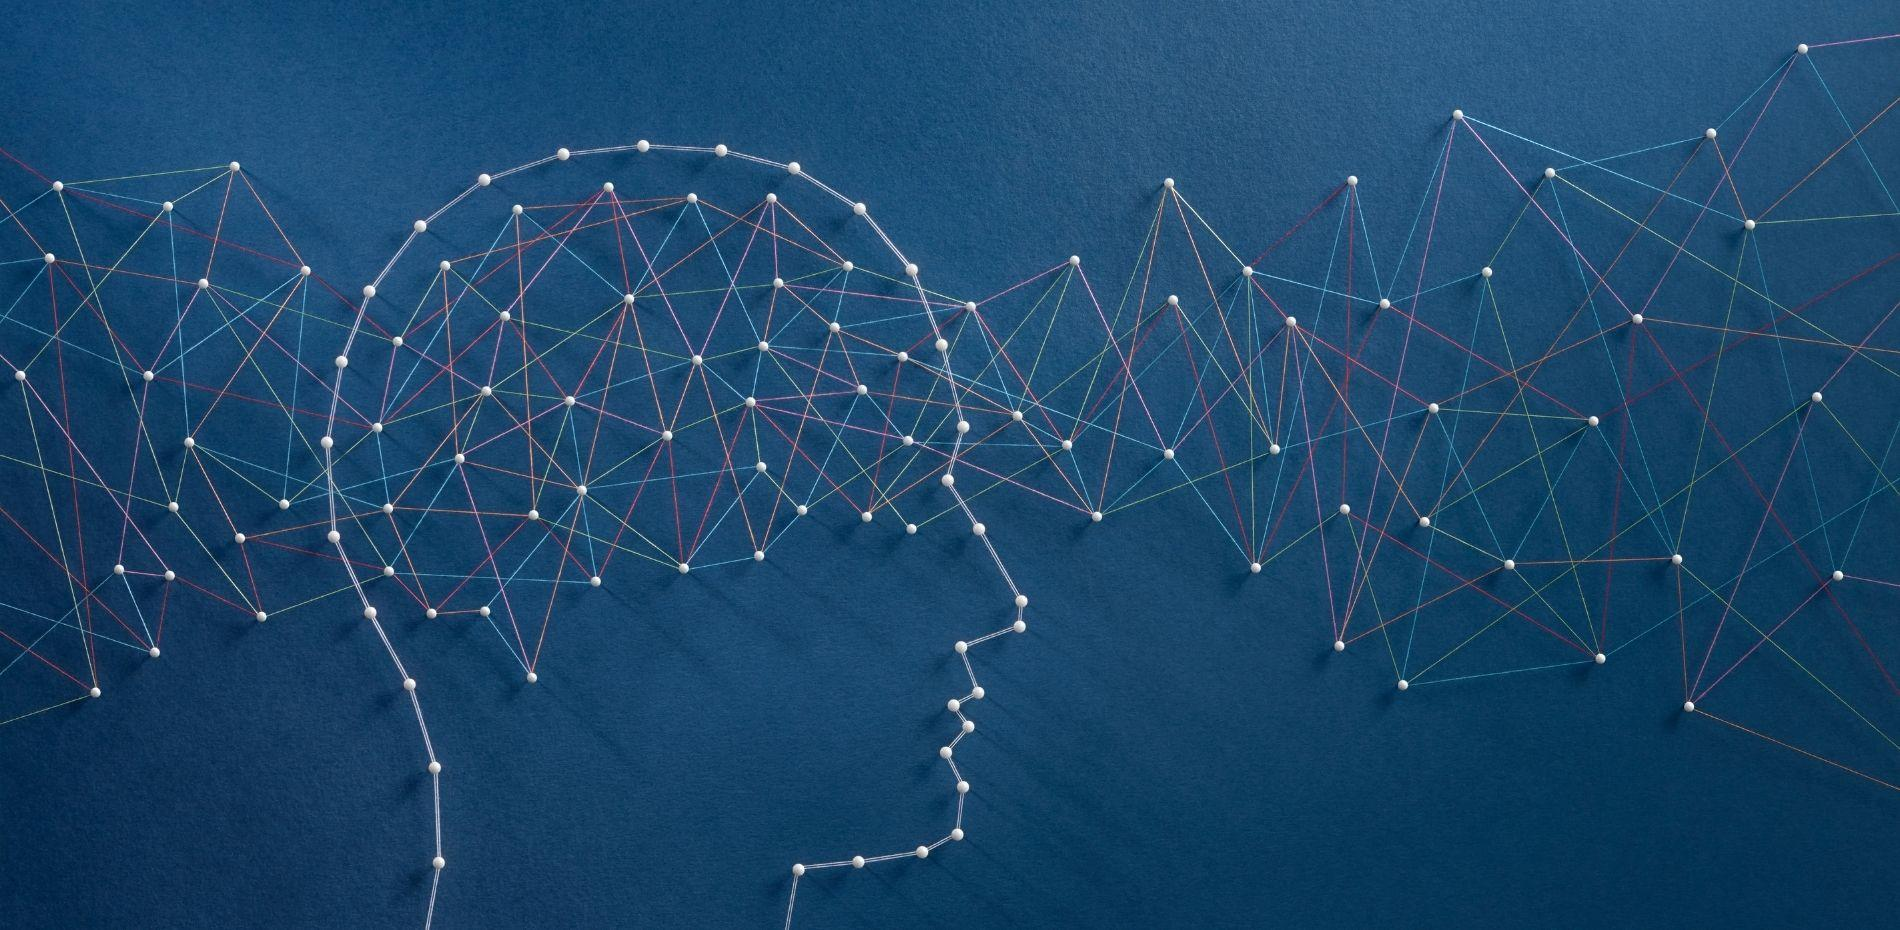 Network of pins and threads in shape of knowledge stream through mind.